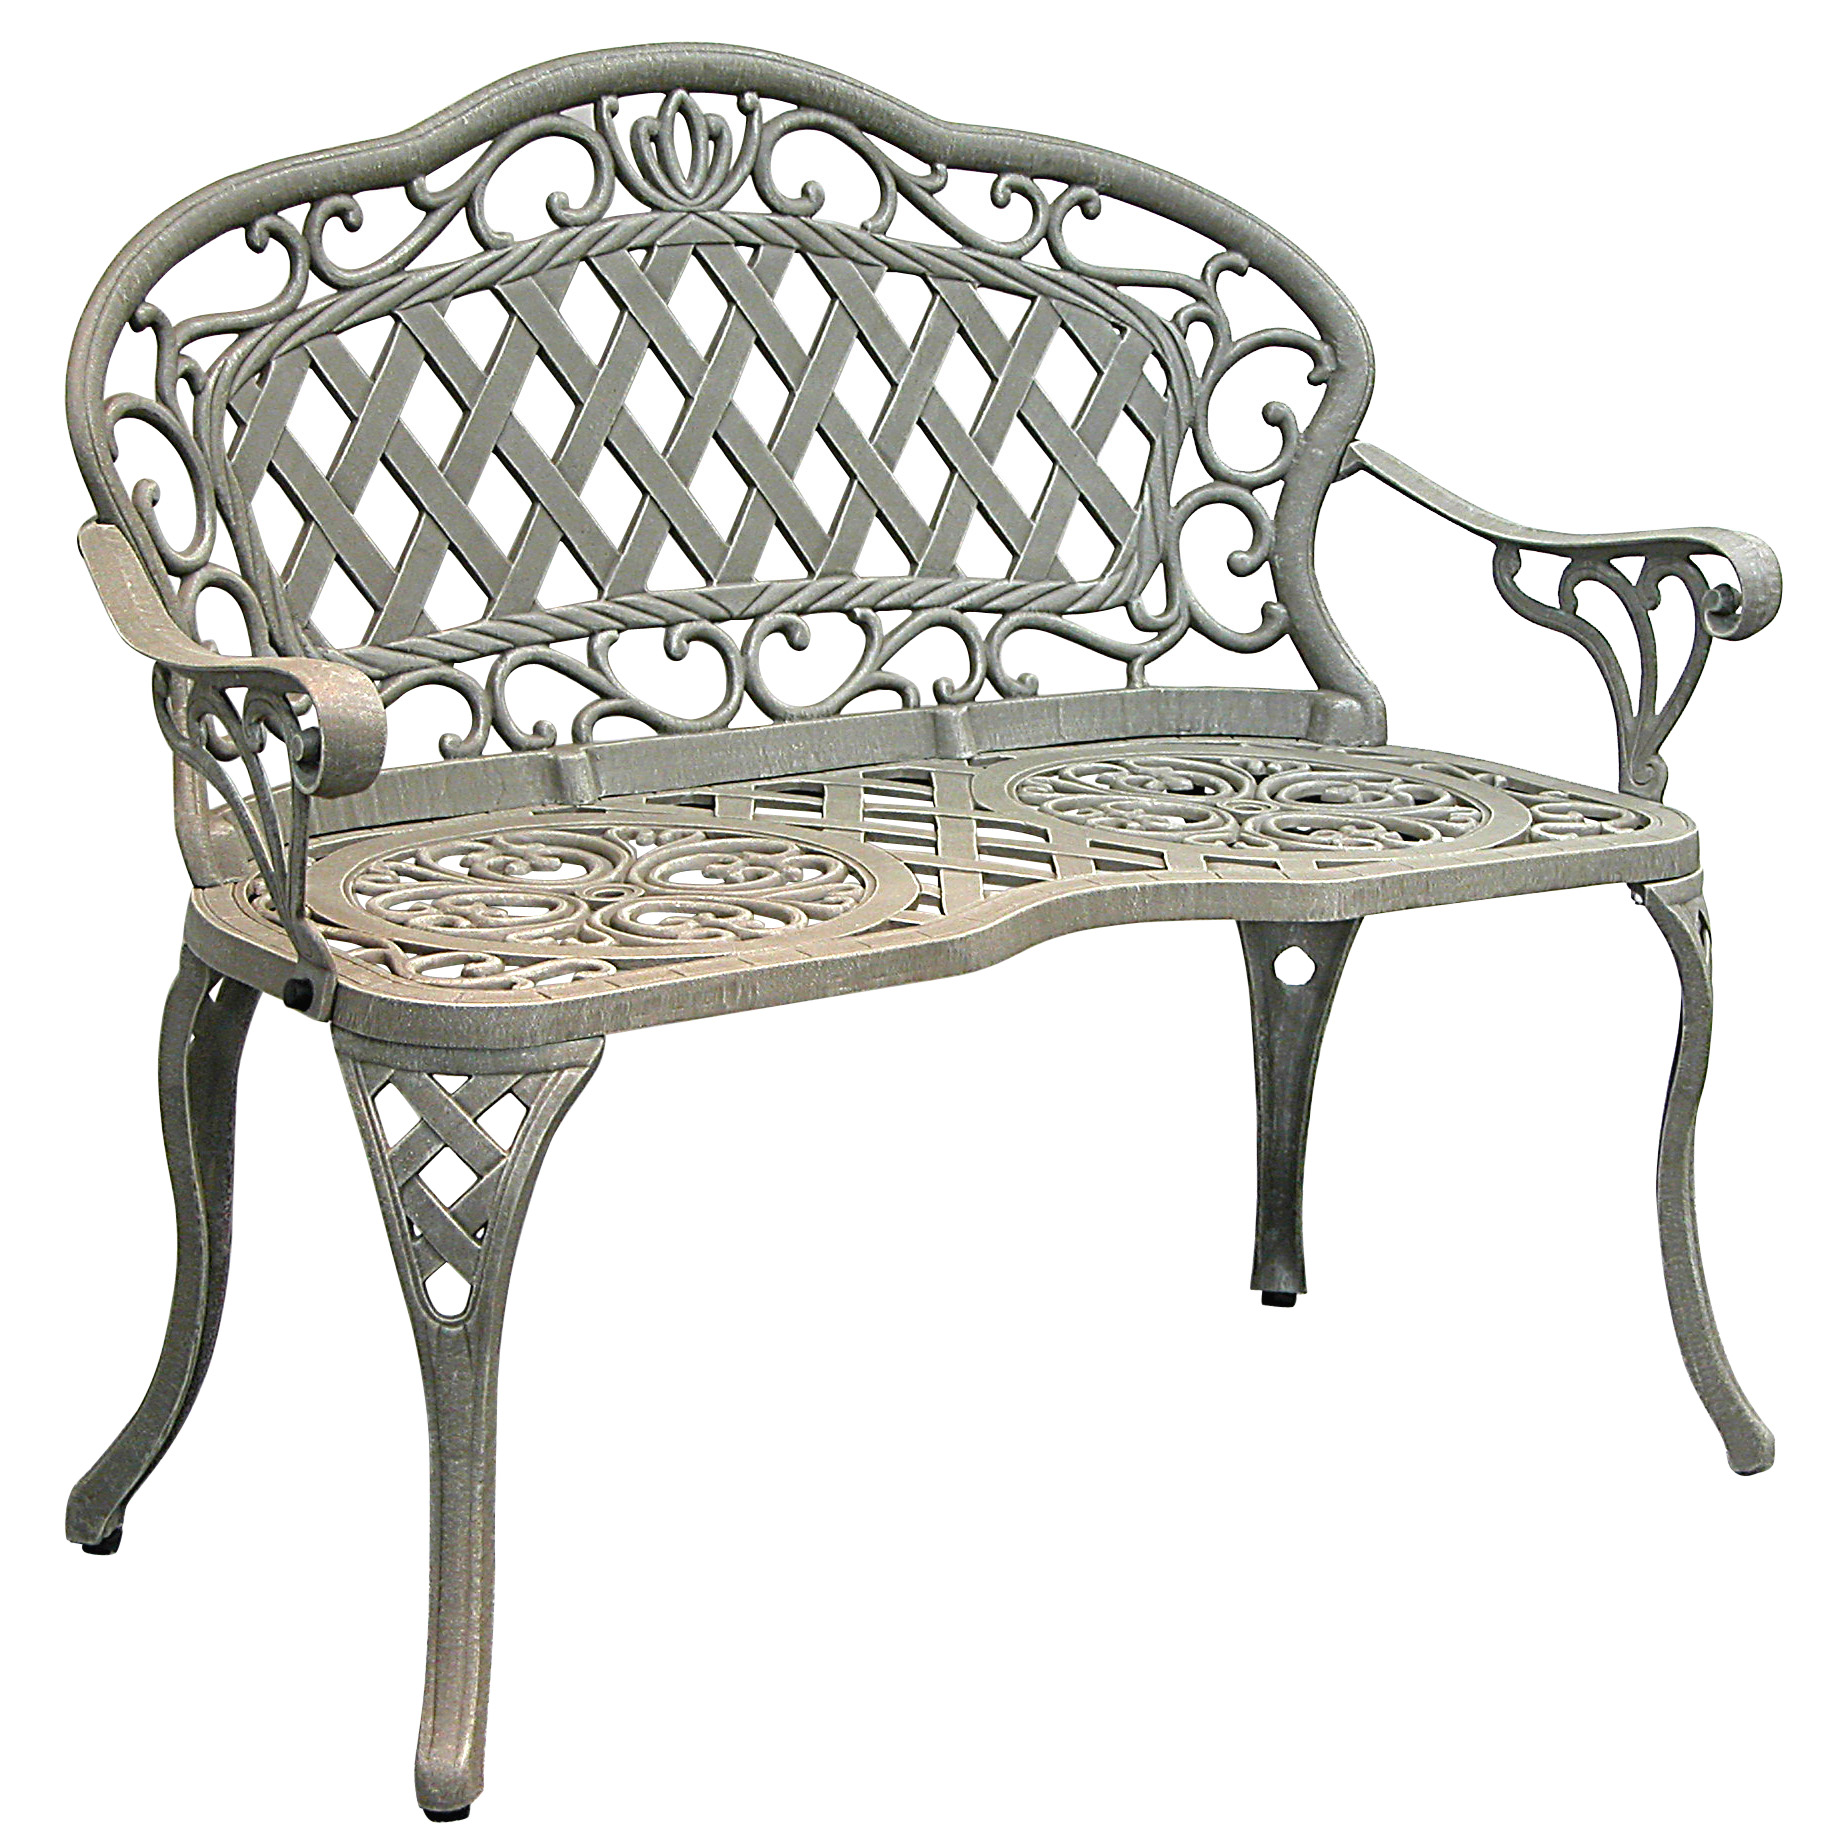 Patio furniture bench cast aluminum iron loveseat regis for Outdoor furniture benches